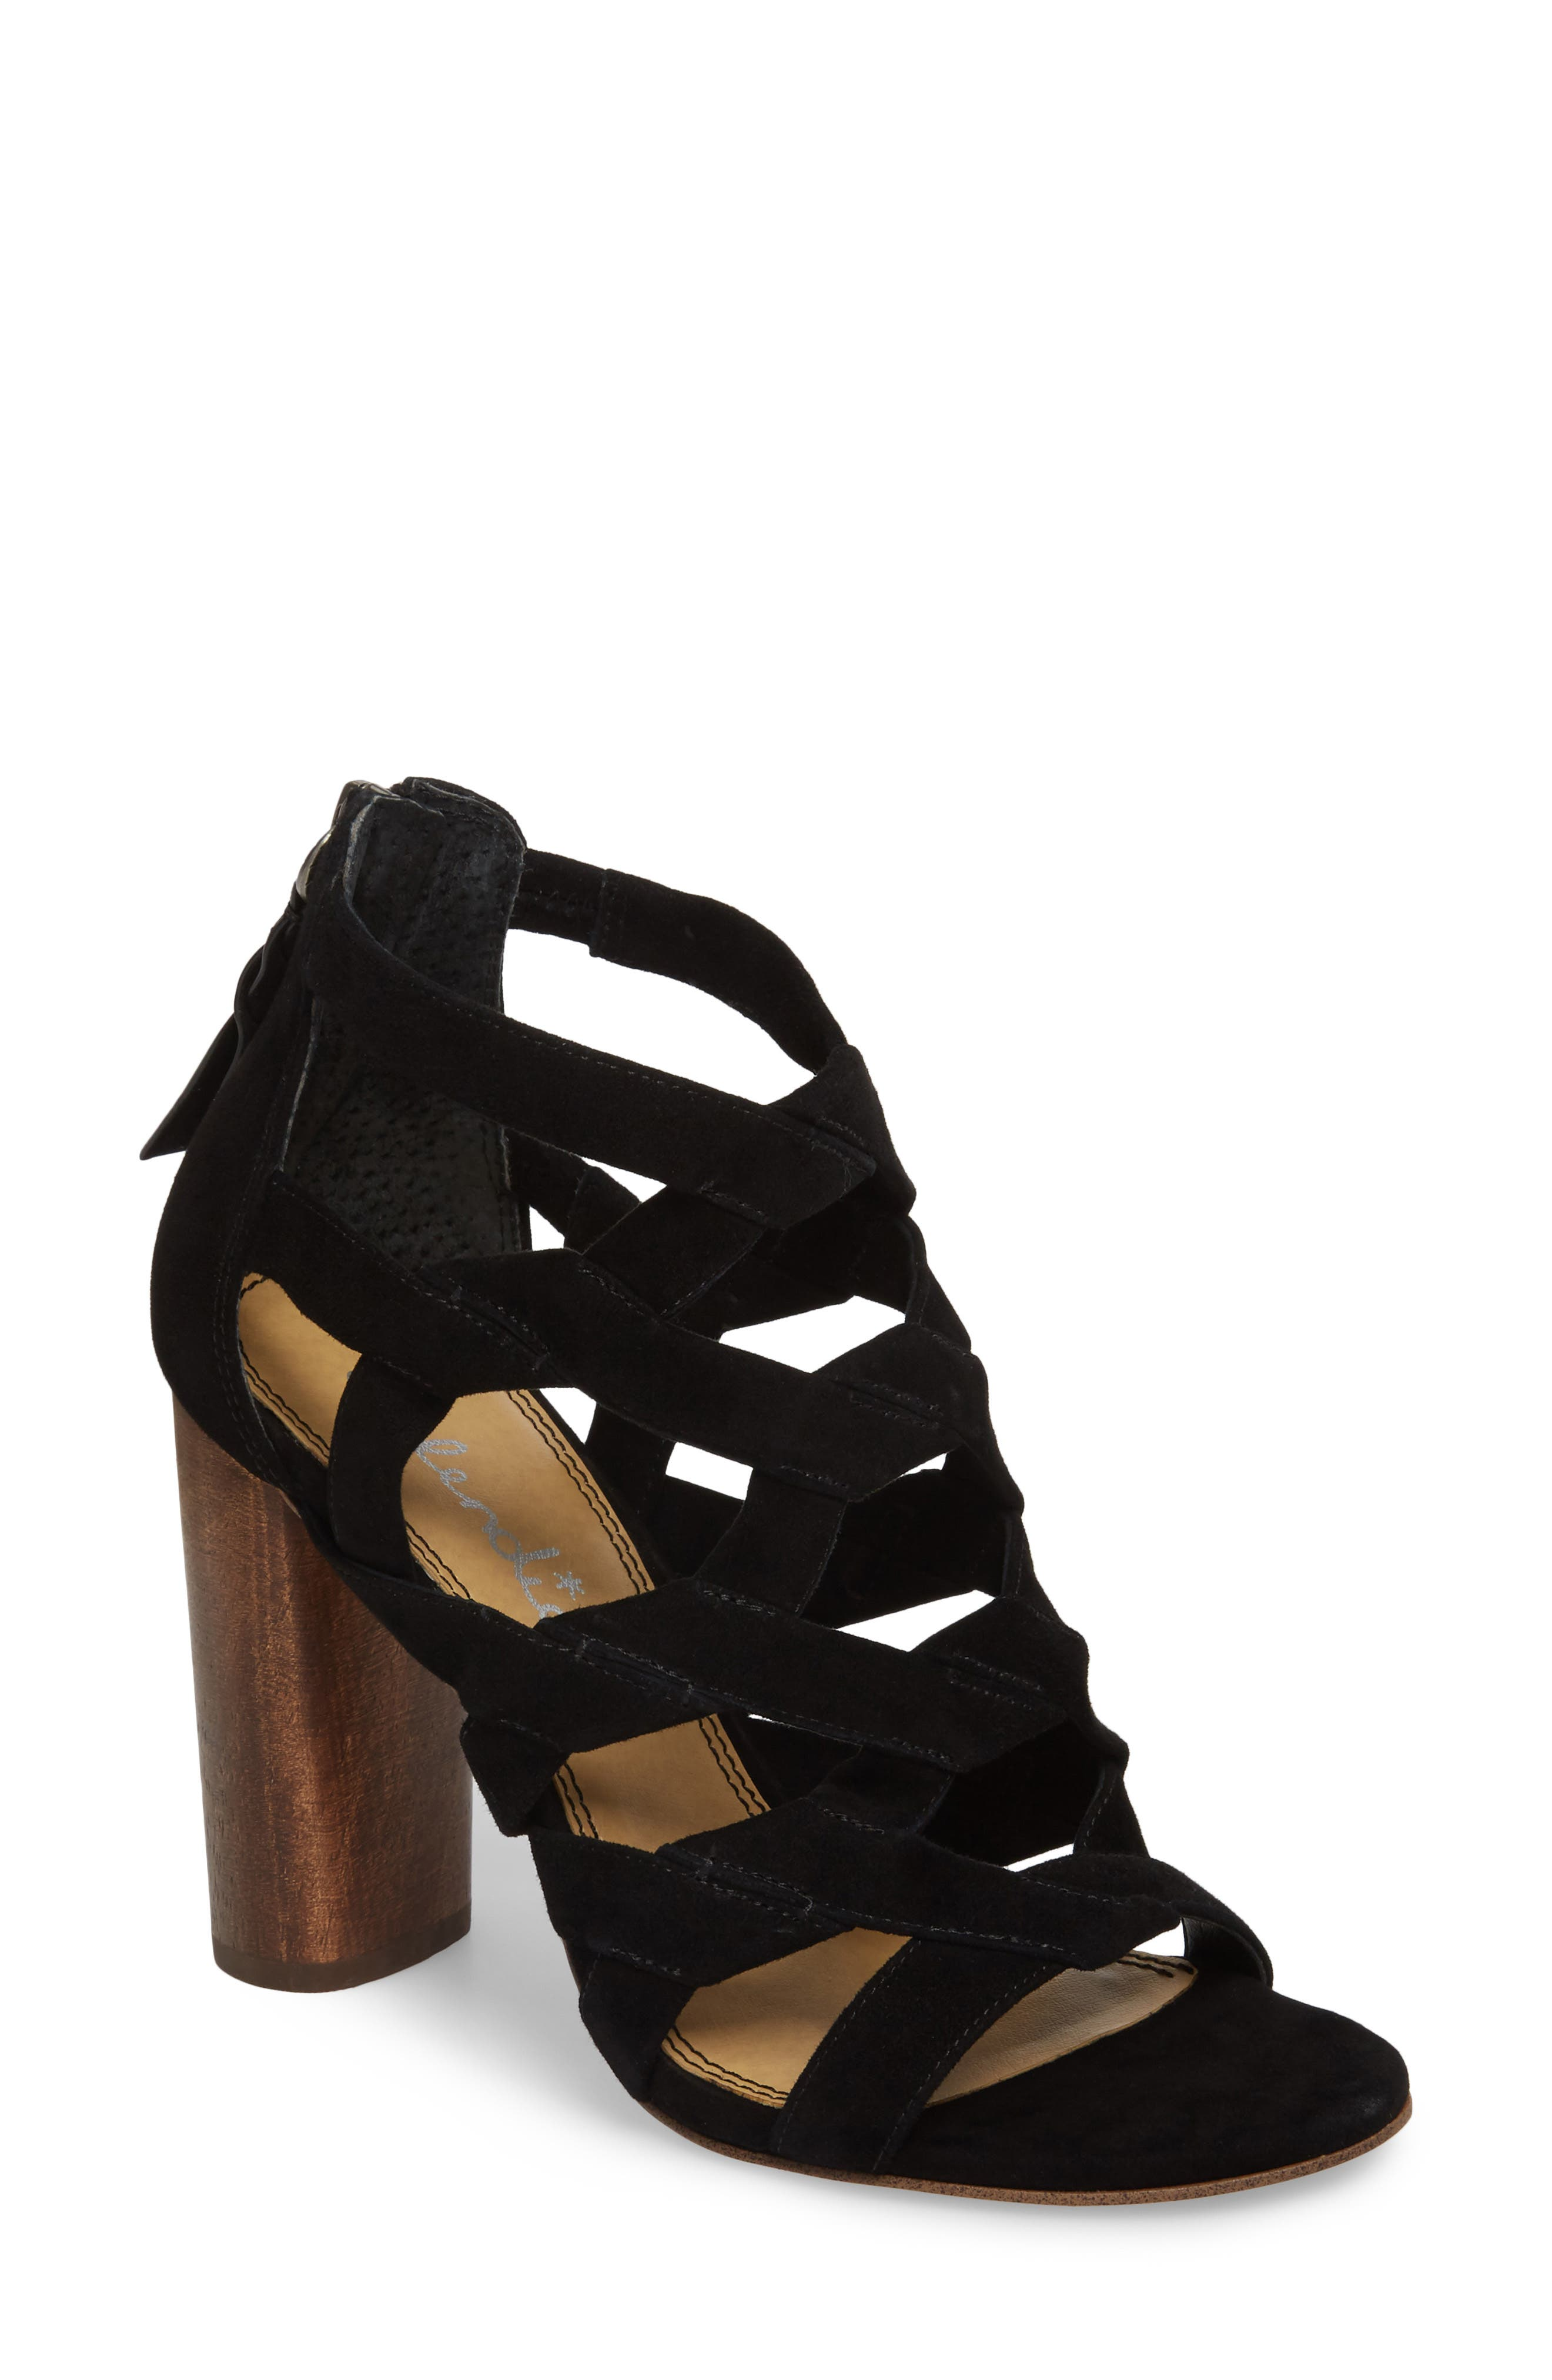 Bartlett Angled Cage Sandal,                             Main thumbnail 1, color,                             013